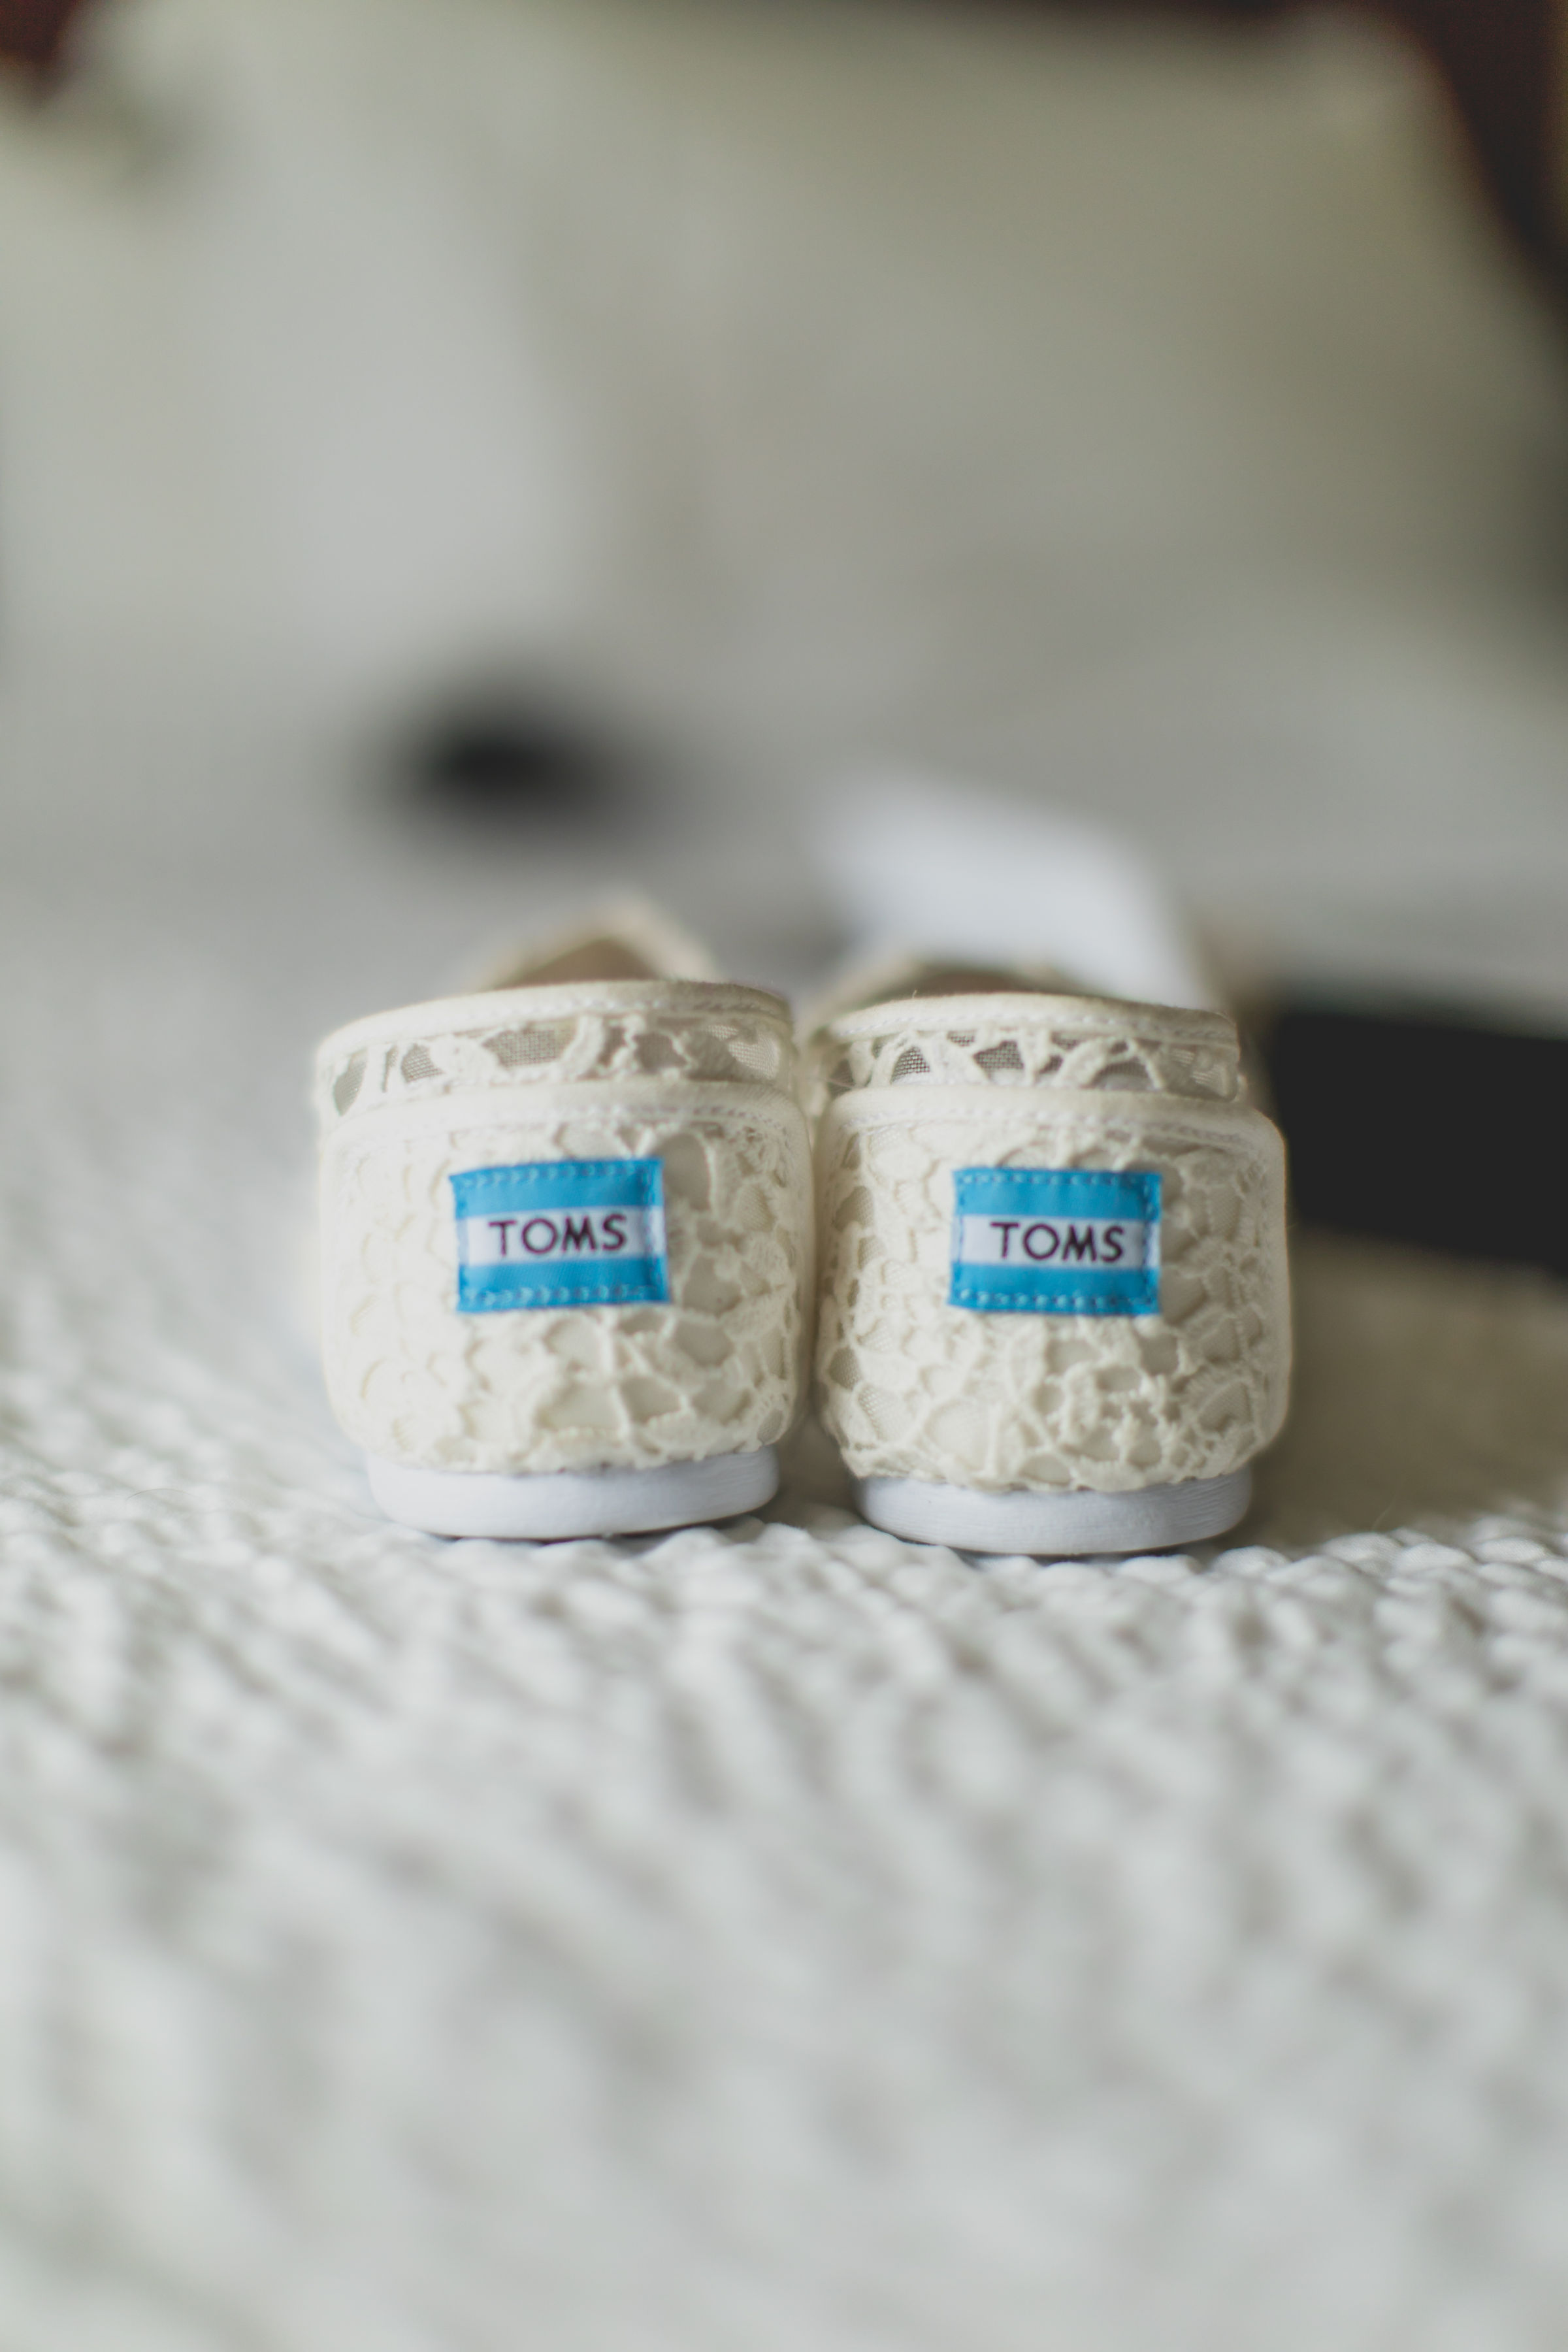 A pair of white lace toms